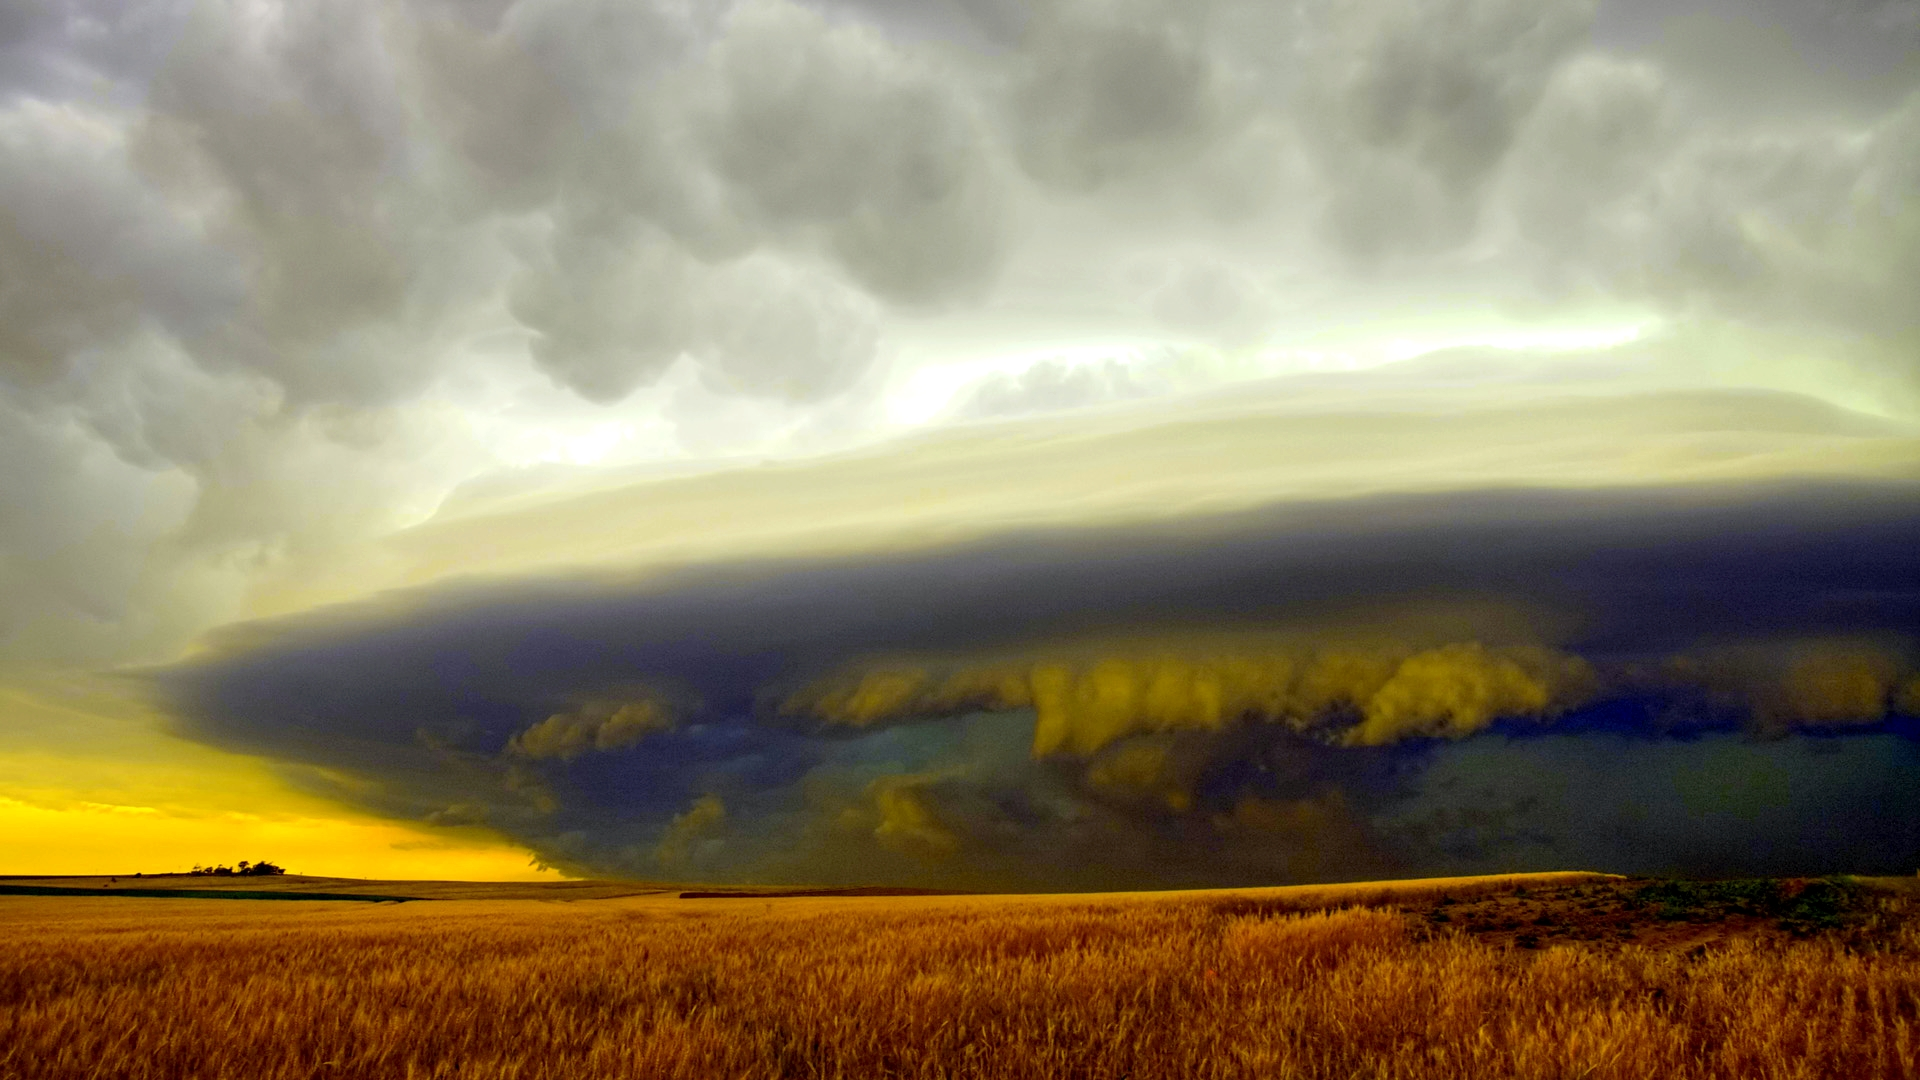 storm image wallpaper high definition high quality